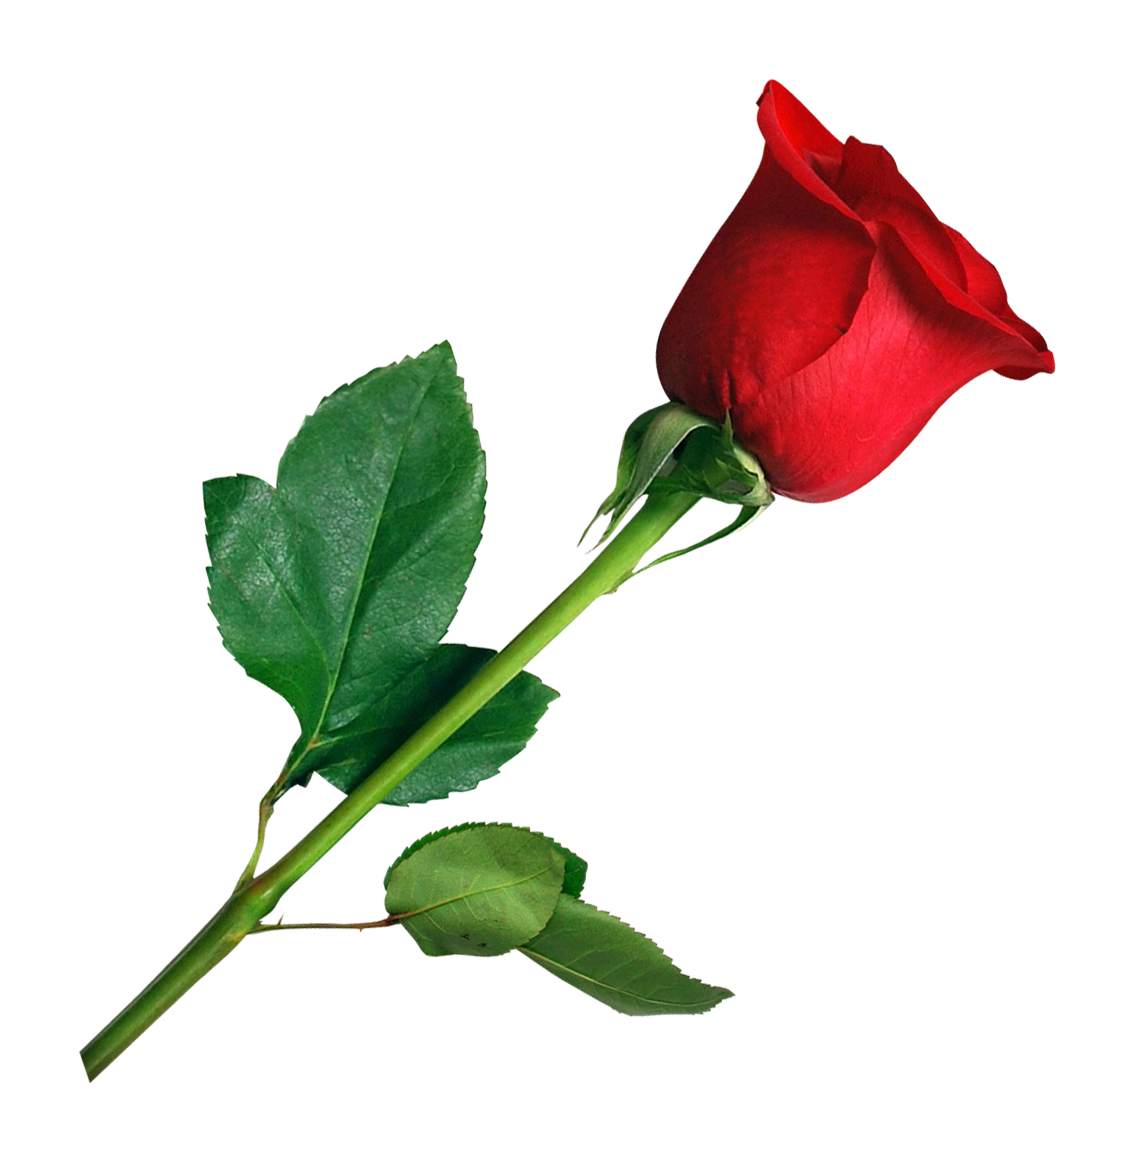 Rose PNG Transparent Image - Rose PNG HD